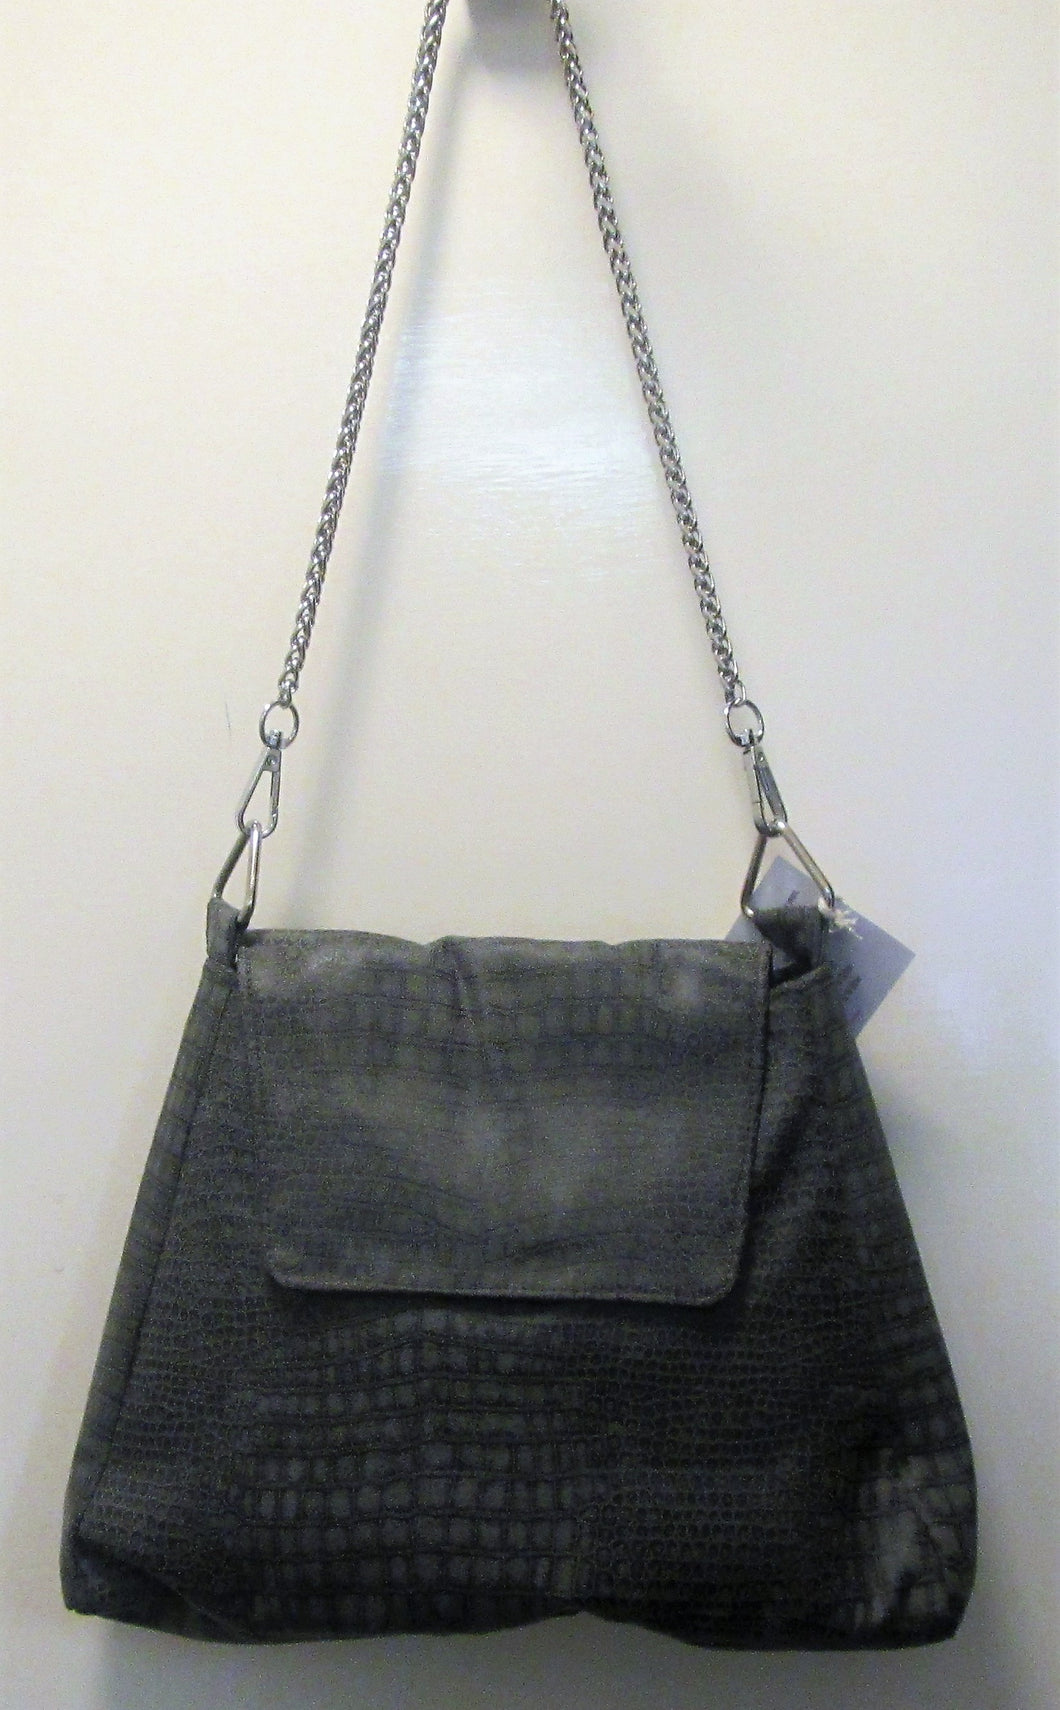 Beautiful handcrafted grey snake skin pattern handbag with silver chain handle